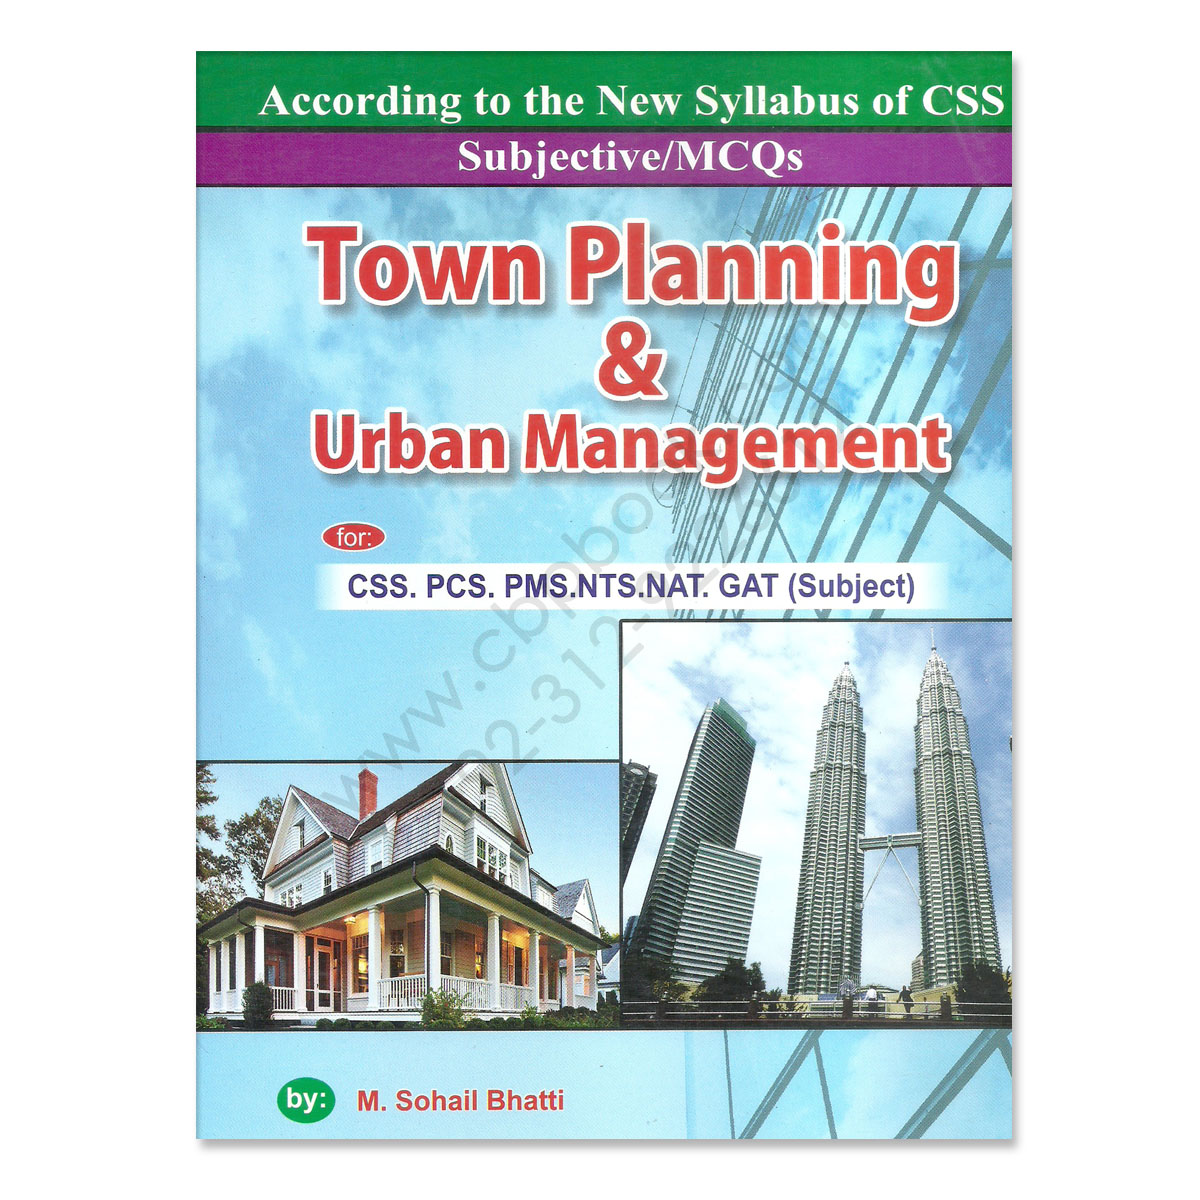 town planning and urban management by m sohail bhatti